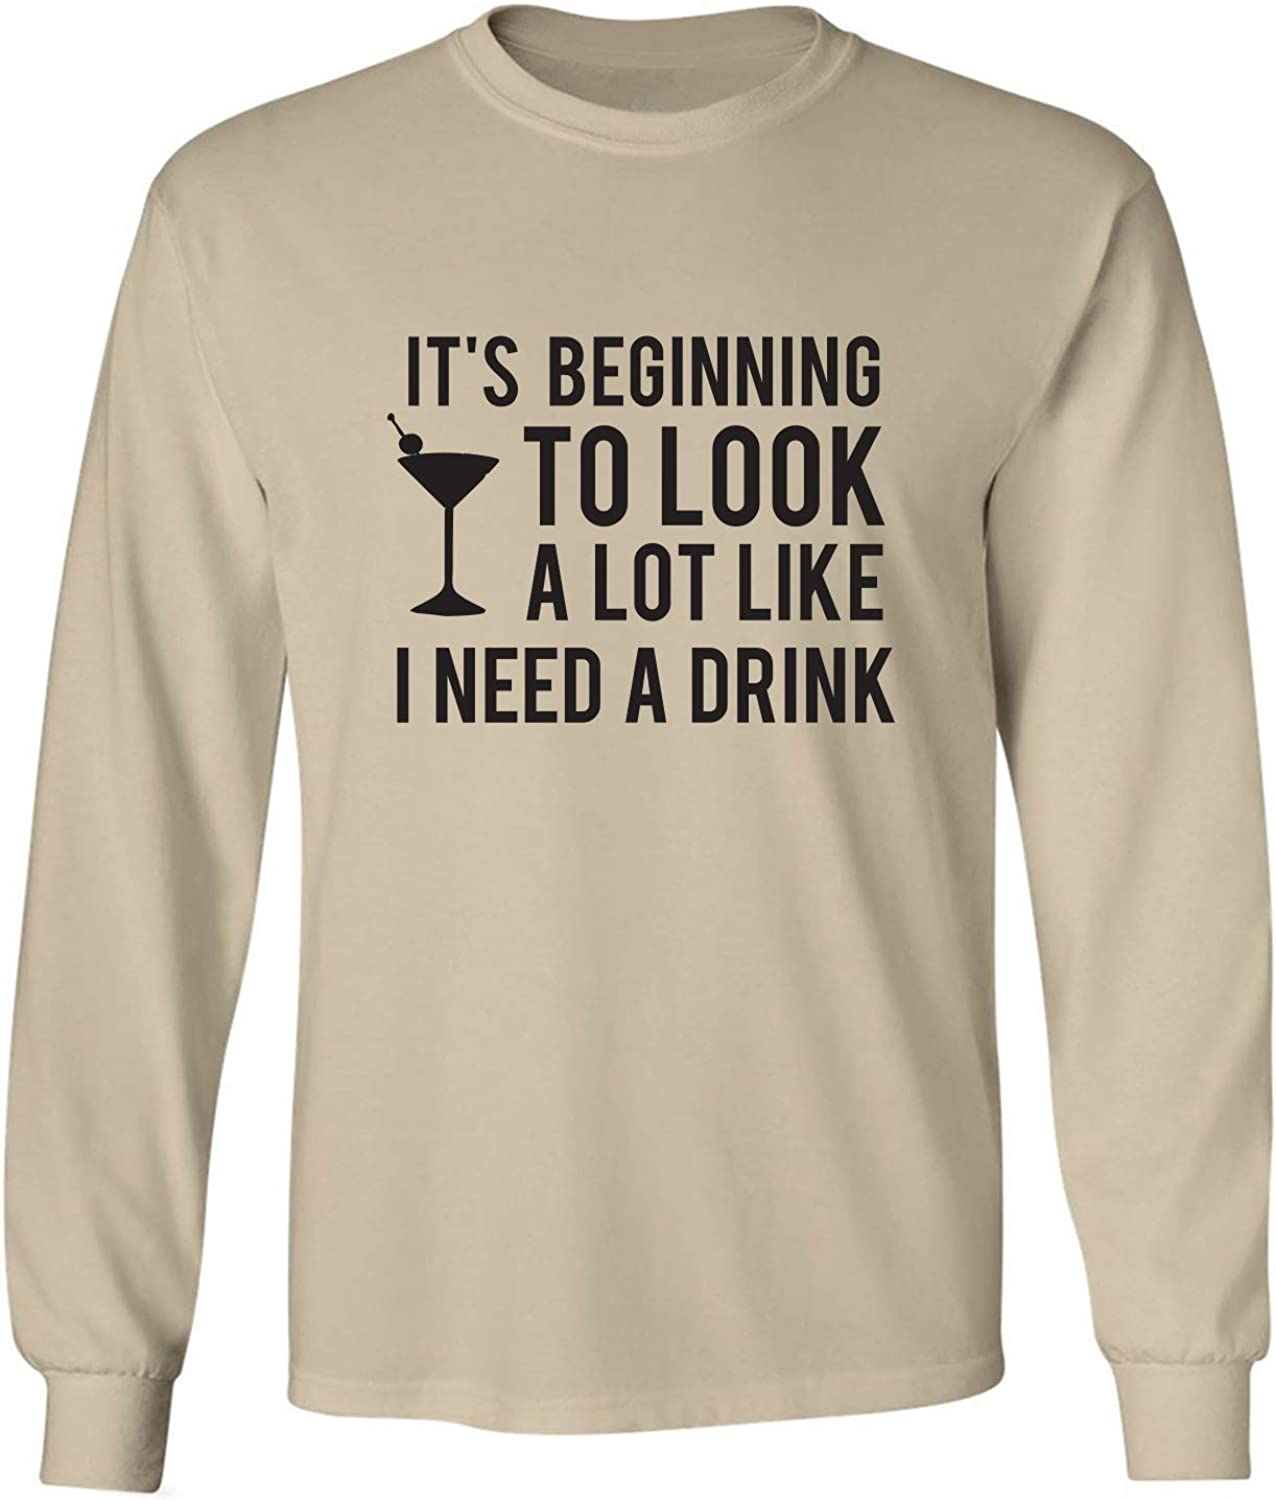 It's Beginning to Look A Lot Like Adult Long Sleeve T-Shirt in Sand - XXXX-Large